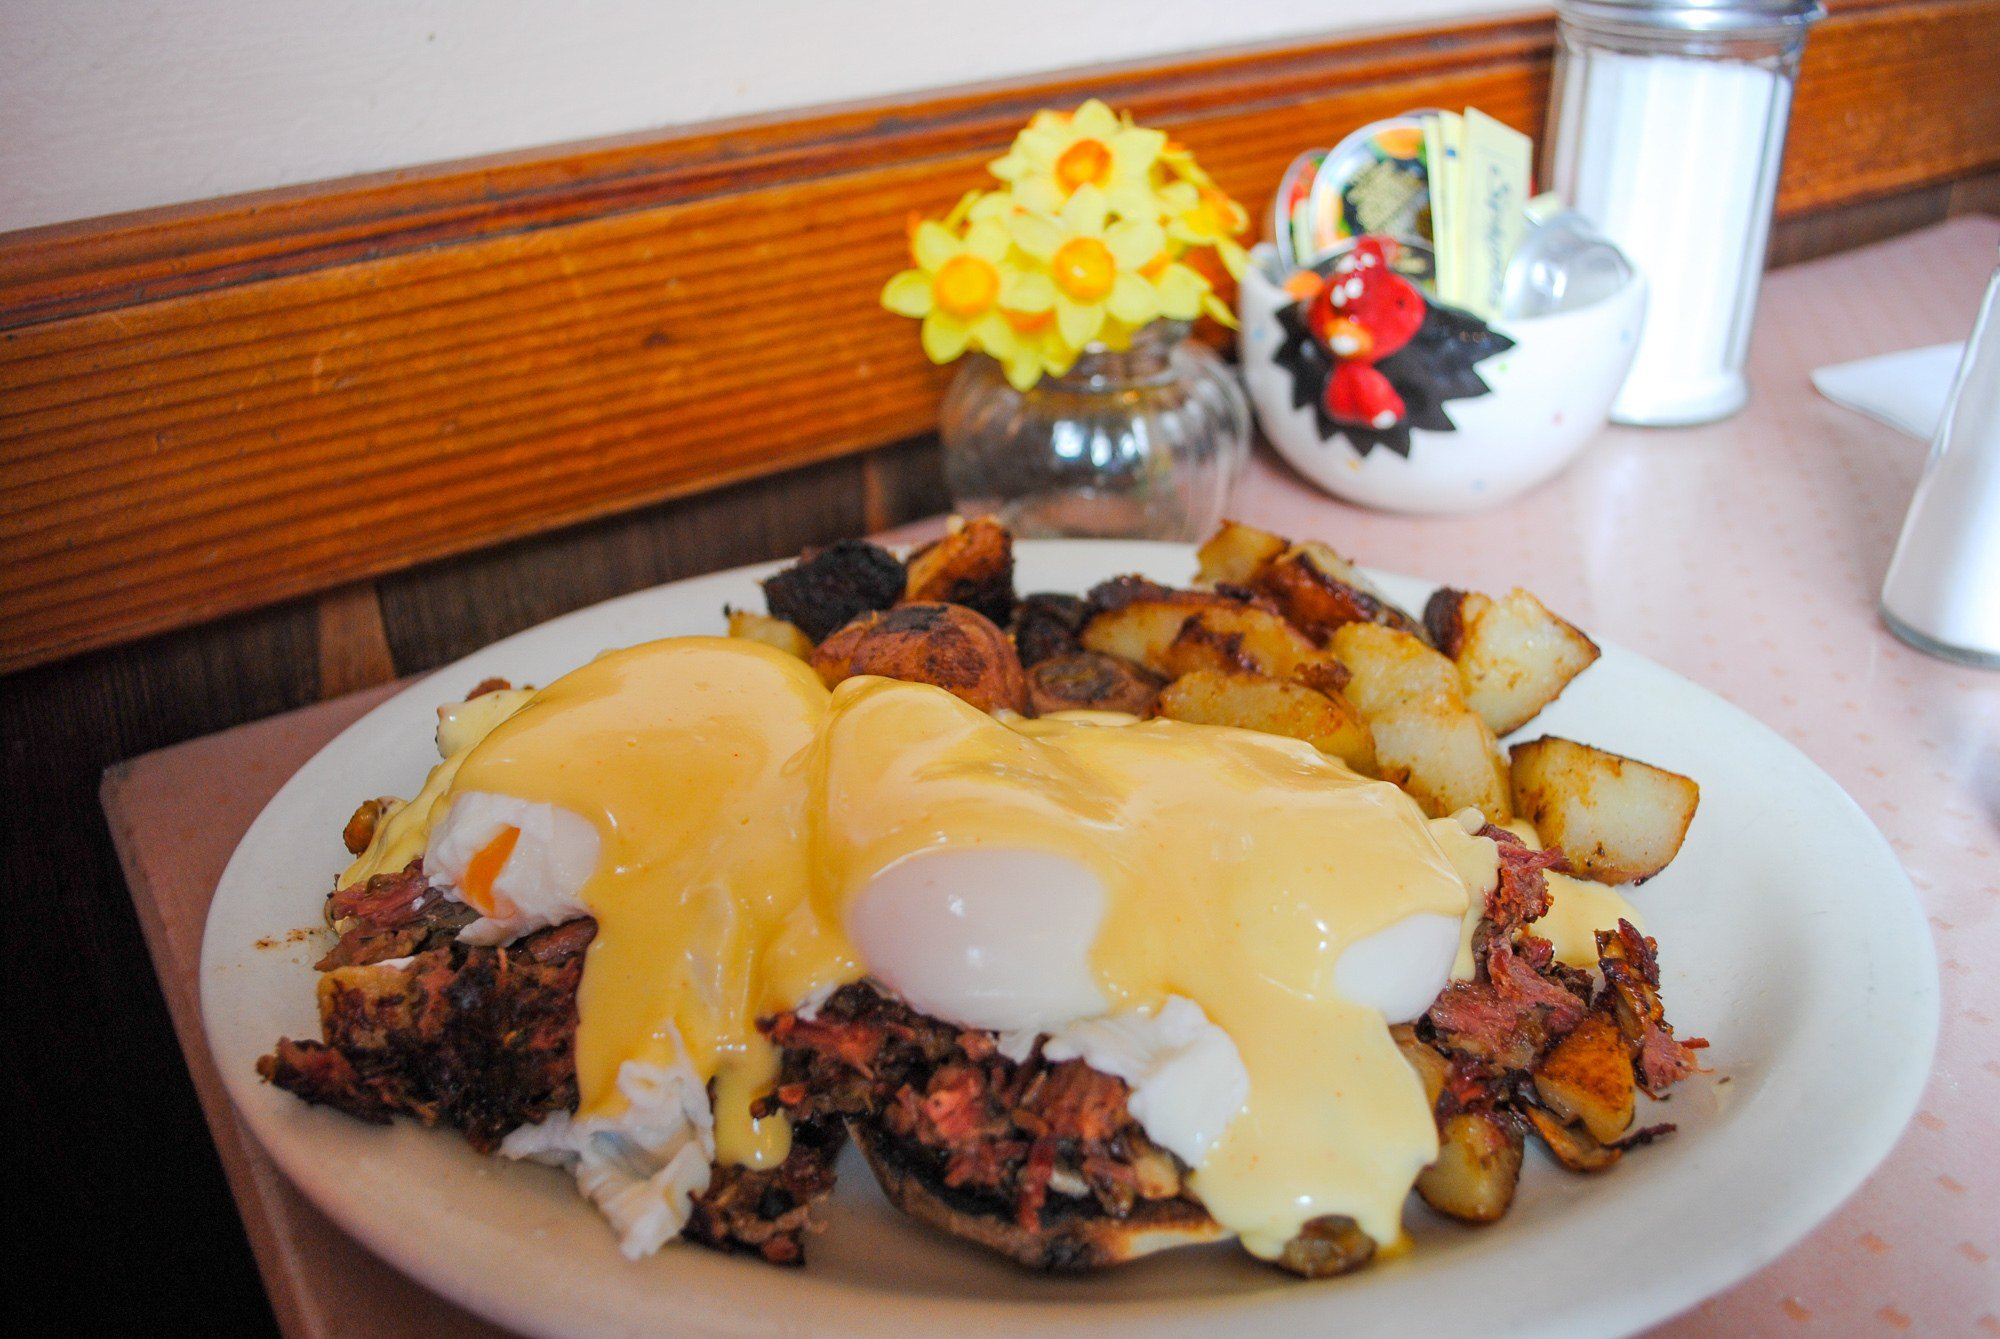 Irish Benedict made with corned beef hash at Katy's Place in Carmel, California